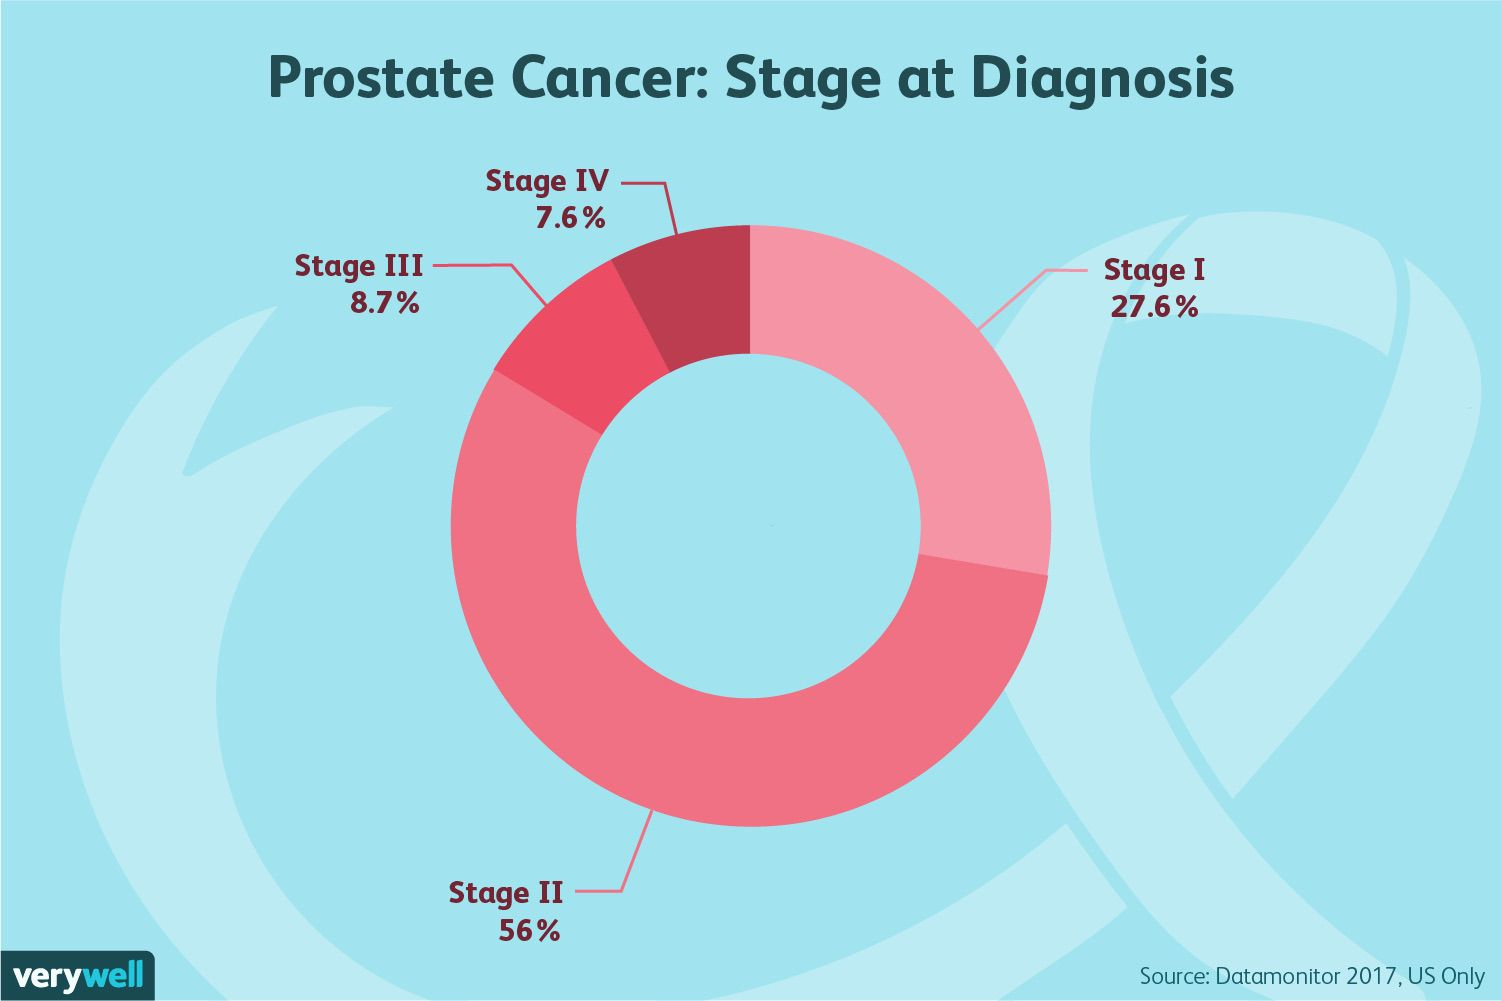 prostate cancer: stage at diagnosis